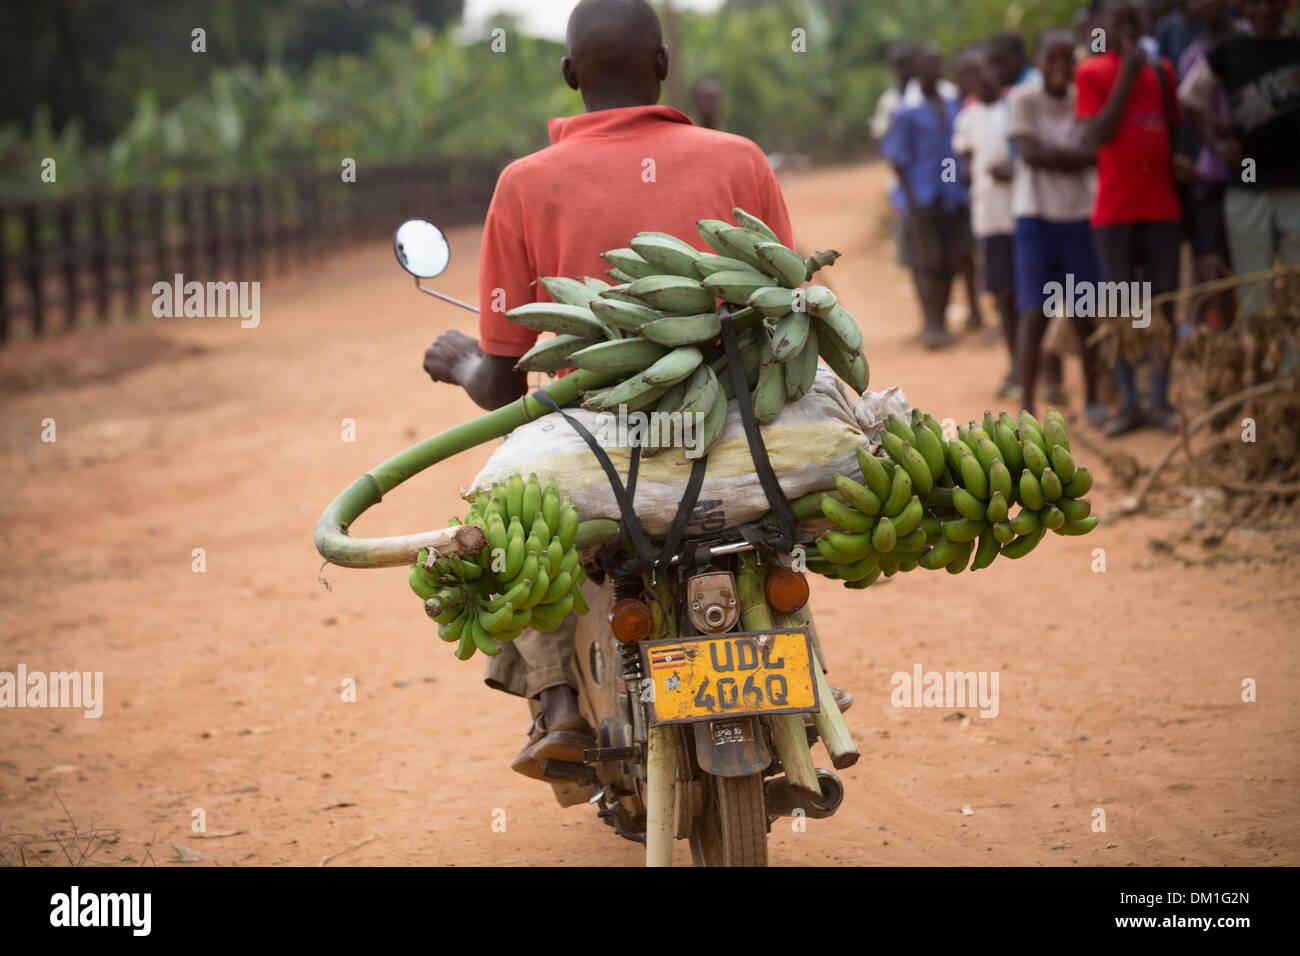 Bananas on the back of a motorcycle near Kampala, Uganda. - Stock Image